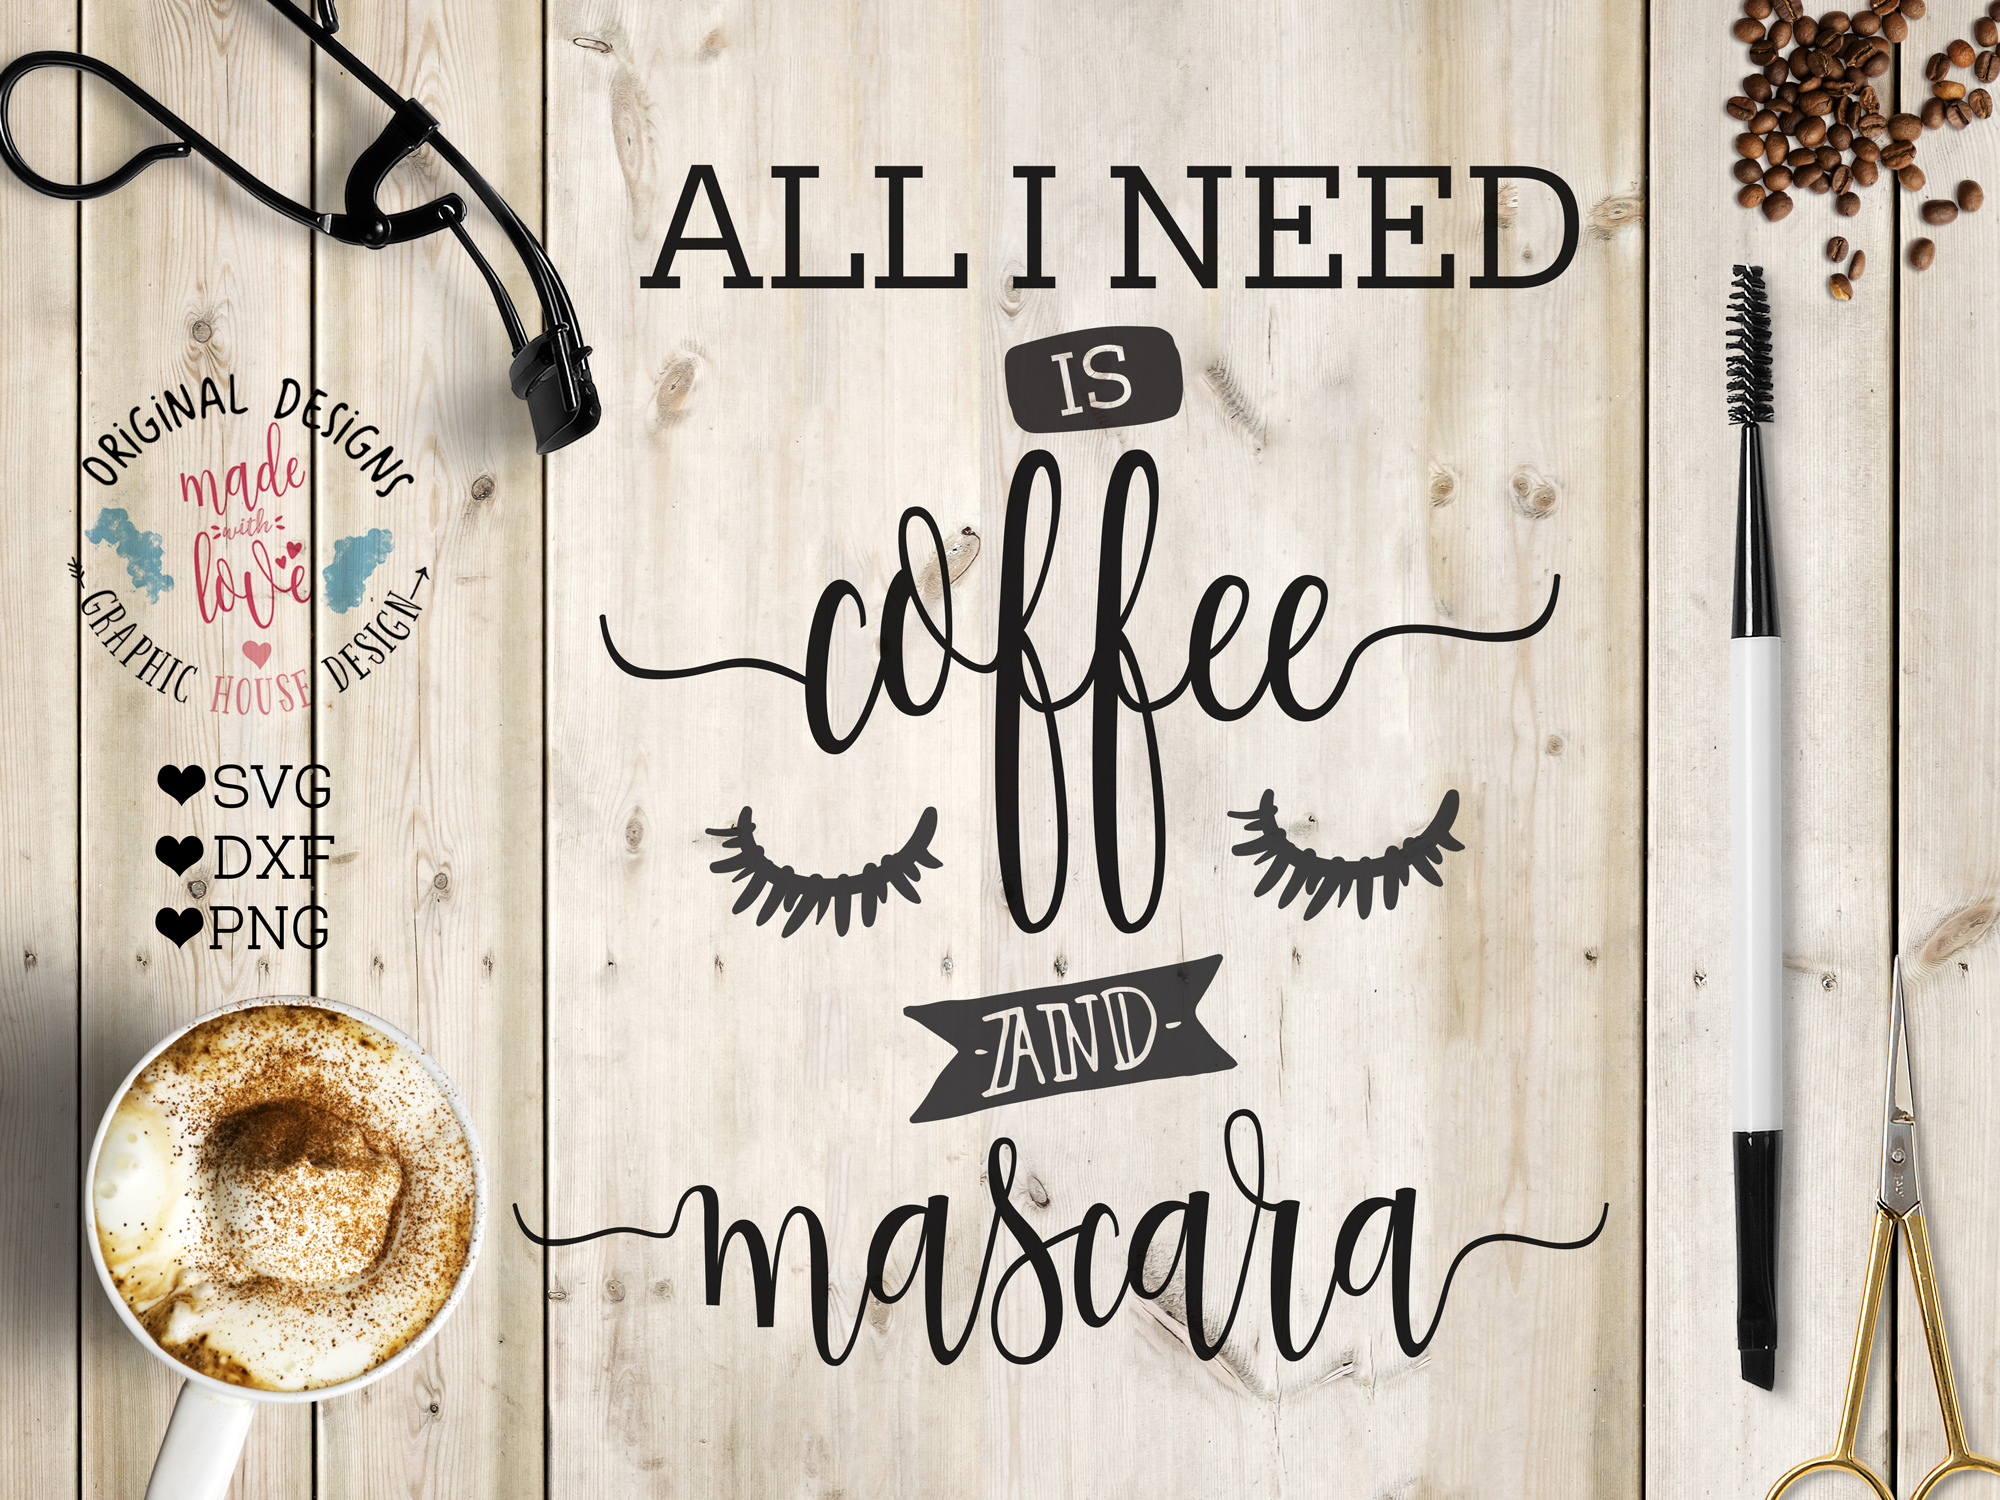 All I need is coffee and mascara Cutting File (SVG, DXF, PNG) example image 1